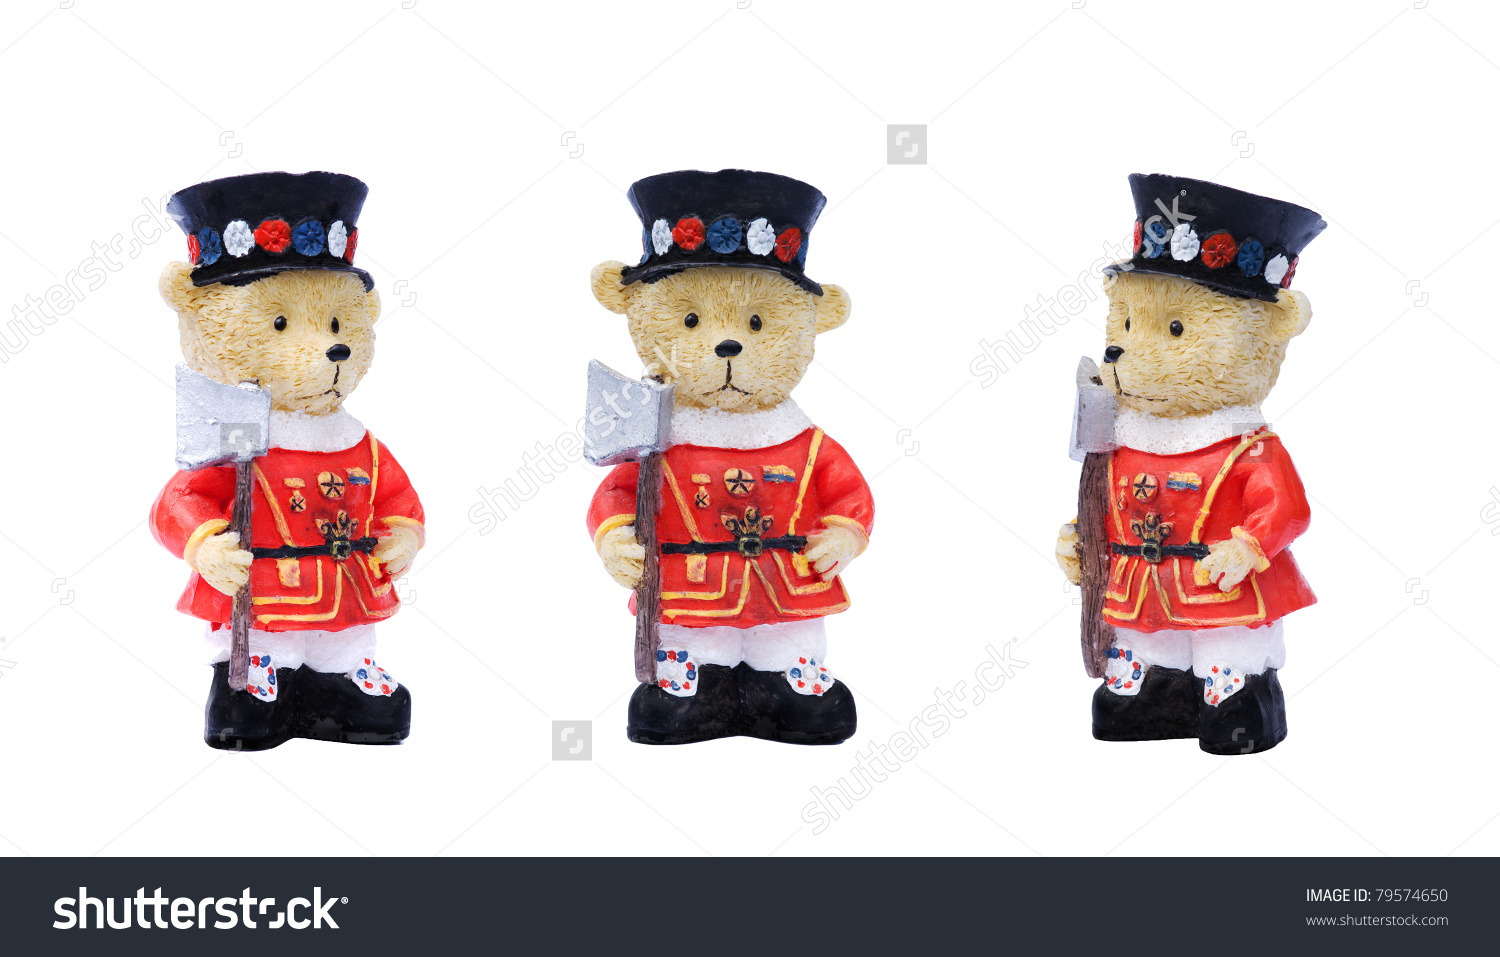 Generic Tourist Type Souvenirs Teddy Bear Stock Photo 79574650.